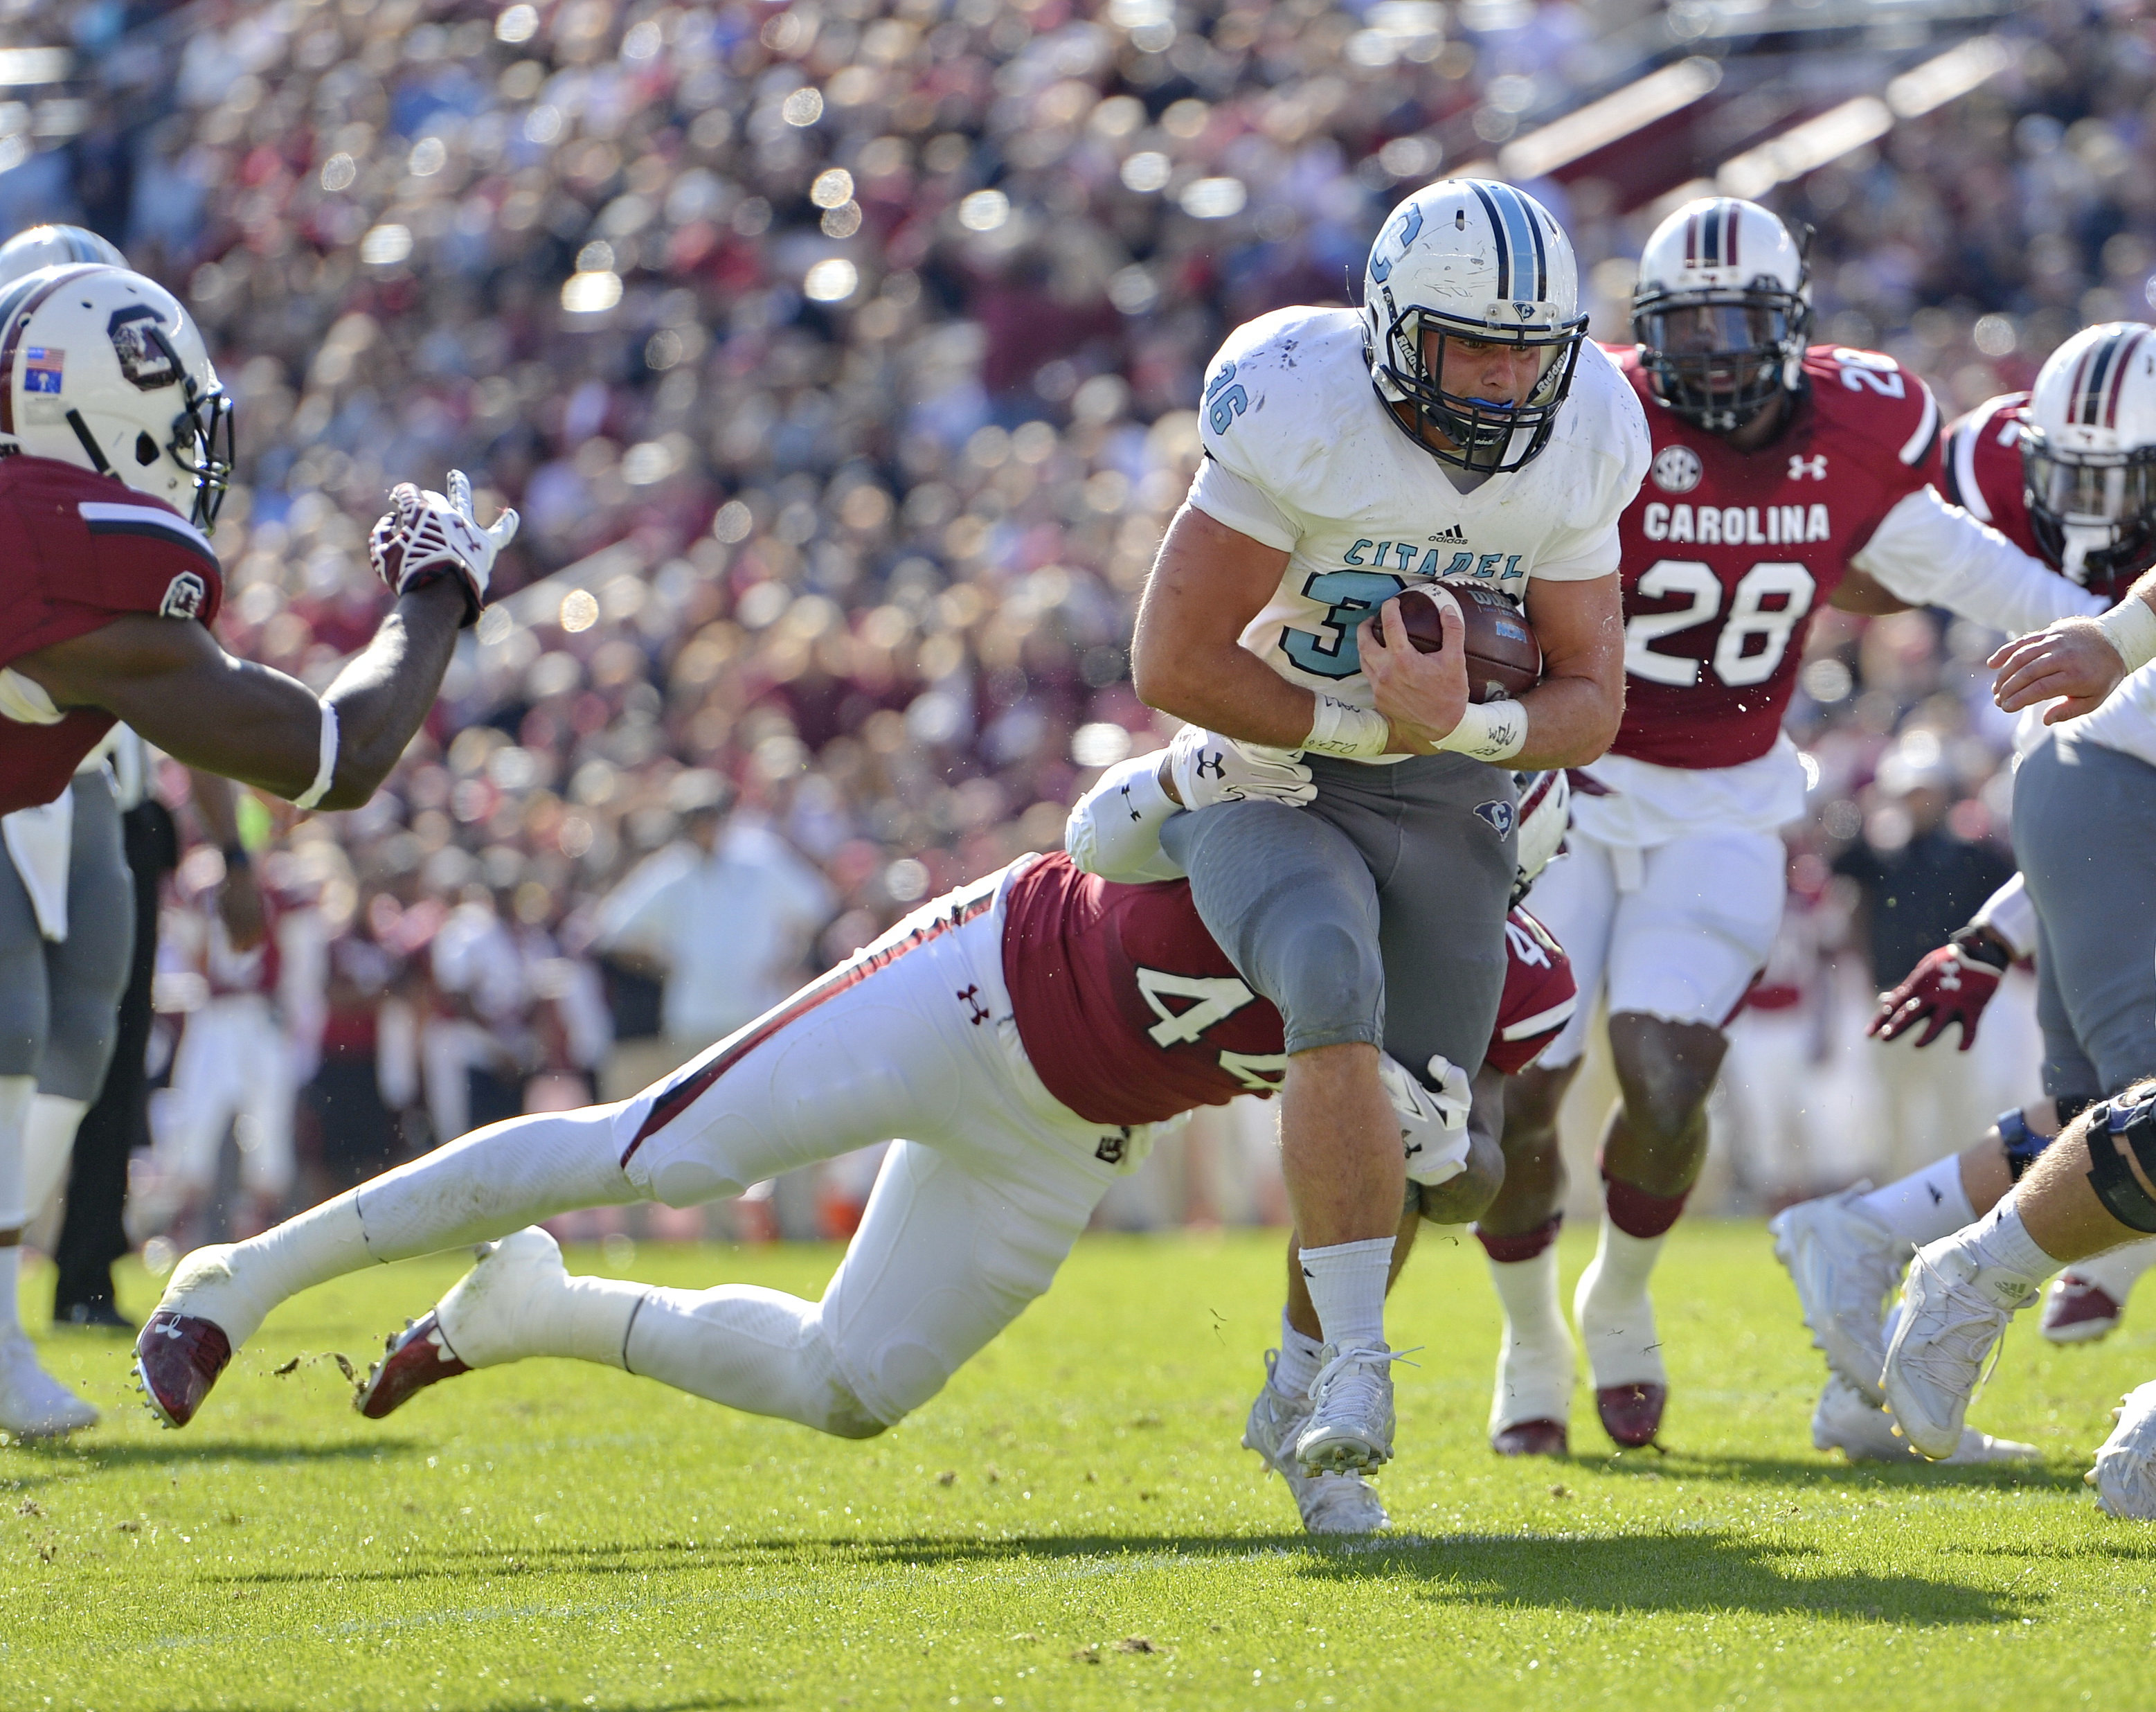 Citadel's Tyler Renew escapes a tackle attempt by South Carolina's Gerald Dixon to score a touchdown during the first half of an NCAA college football game Saturday, Nov. 21, 2015,  in Columbia,  S.C. (AP Photo/Richard Shiro)